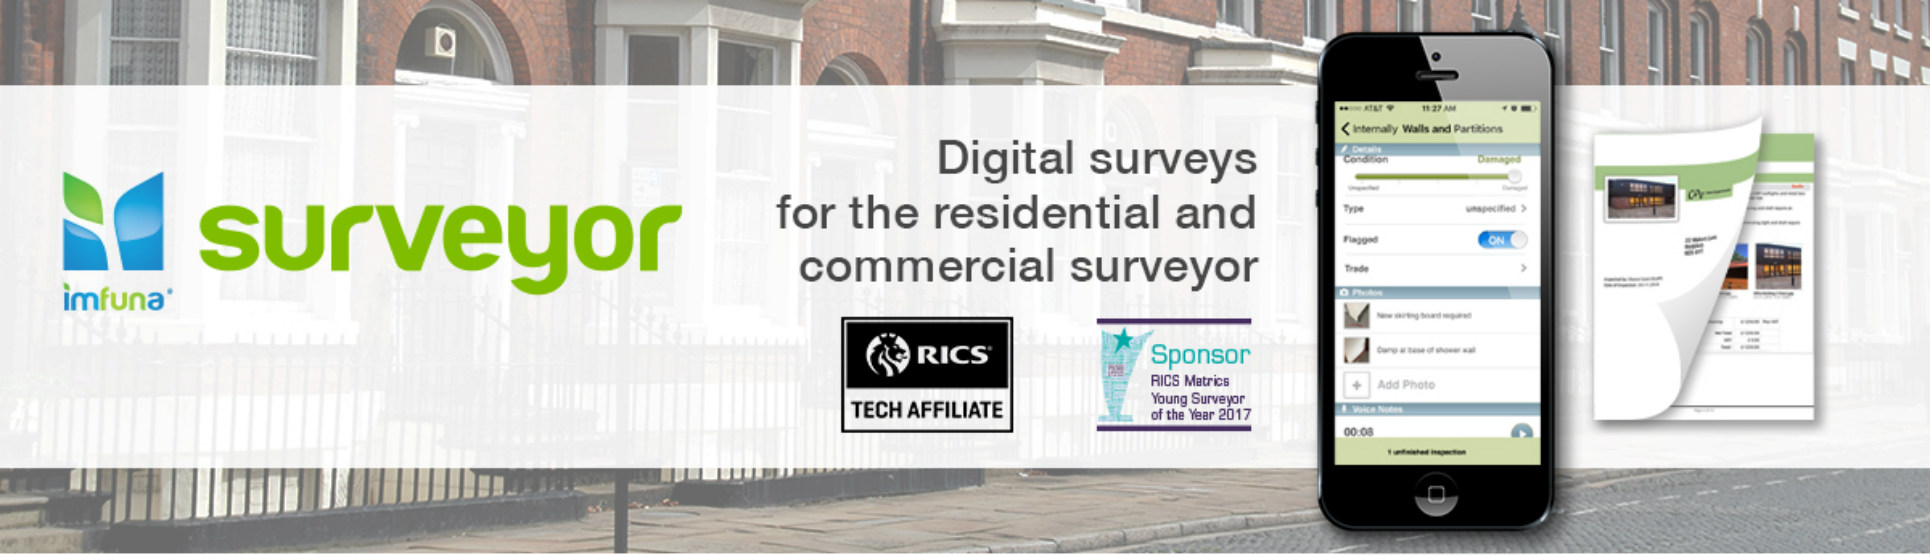 3ea1e1131fa0d3 Mobile surveying app for residential surveyors and commercial surveyors